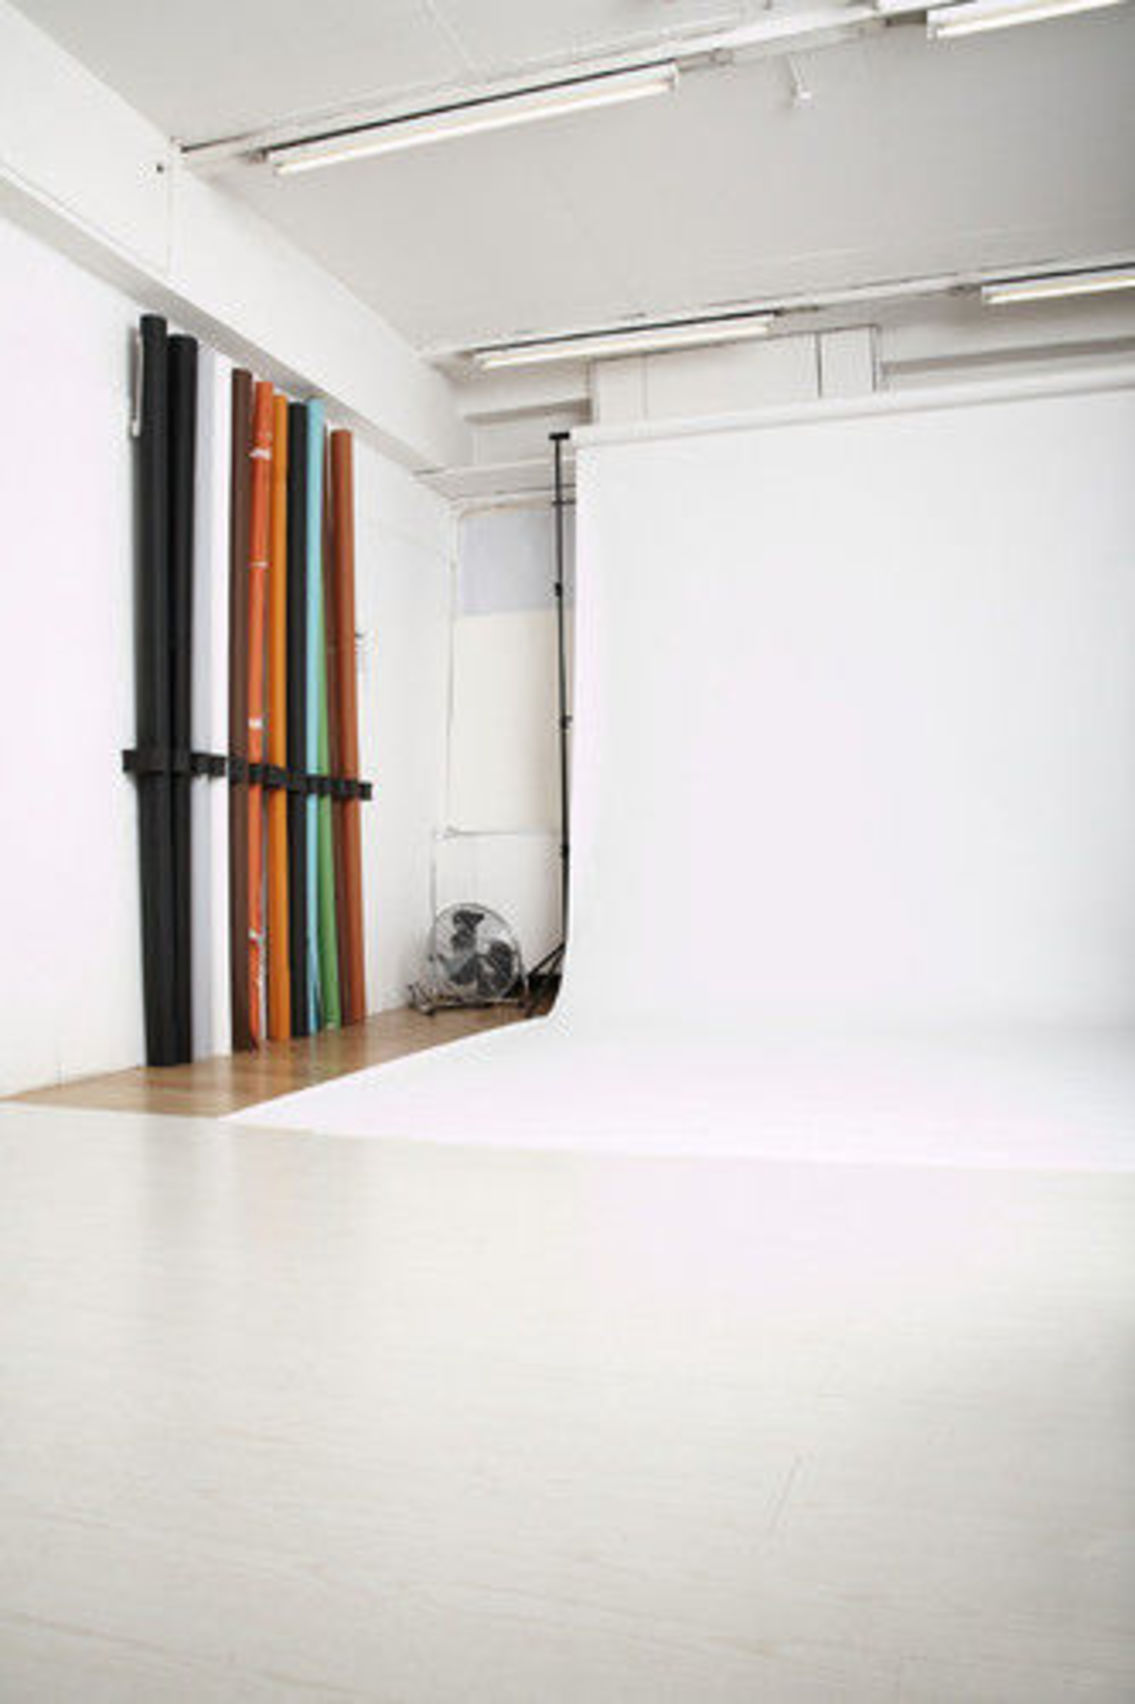 Studio, Light Studios